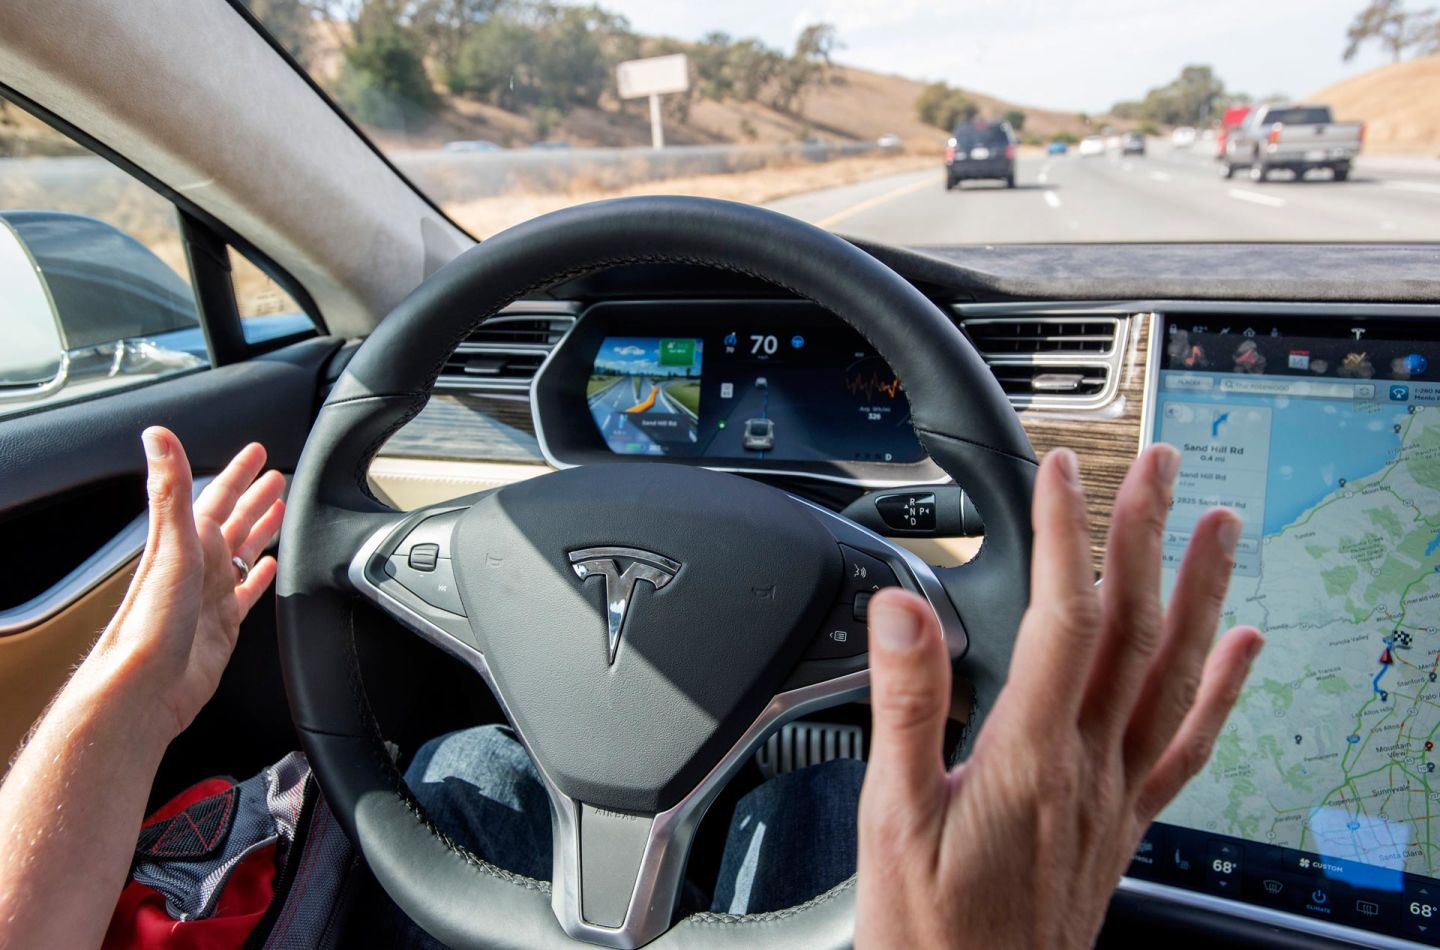 Self-Driving Cars Must Have a Driver Behind the Wheel, State Says